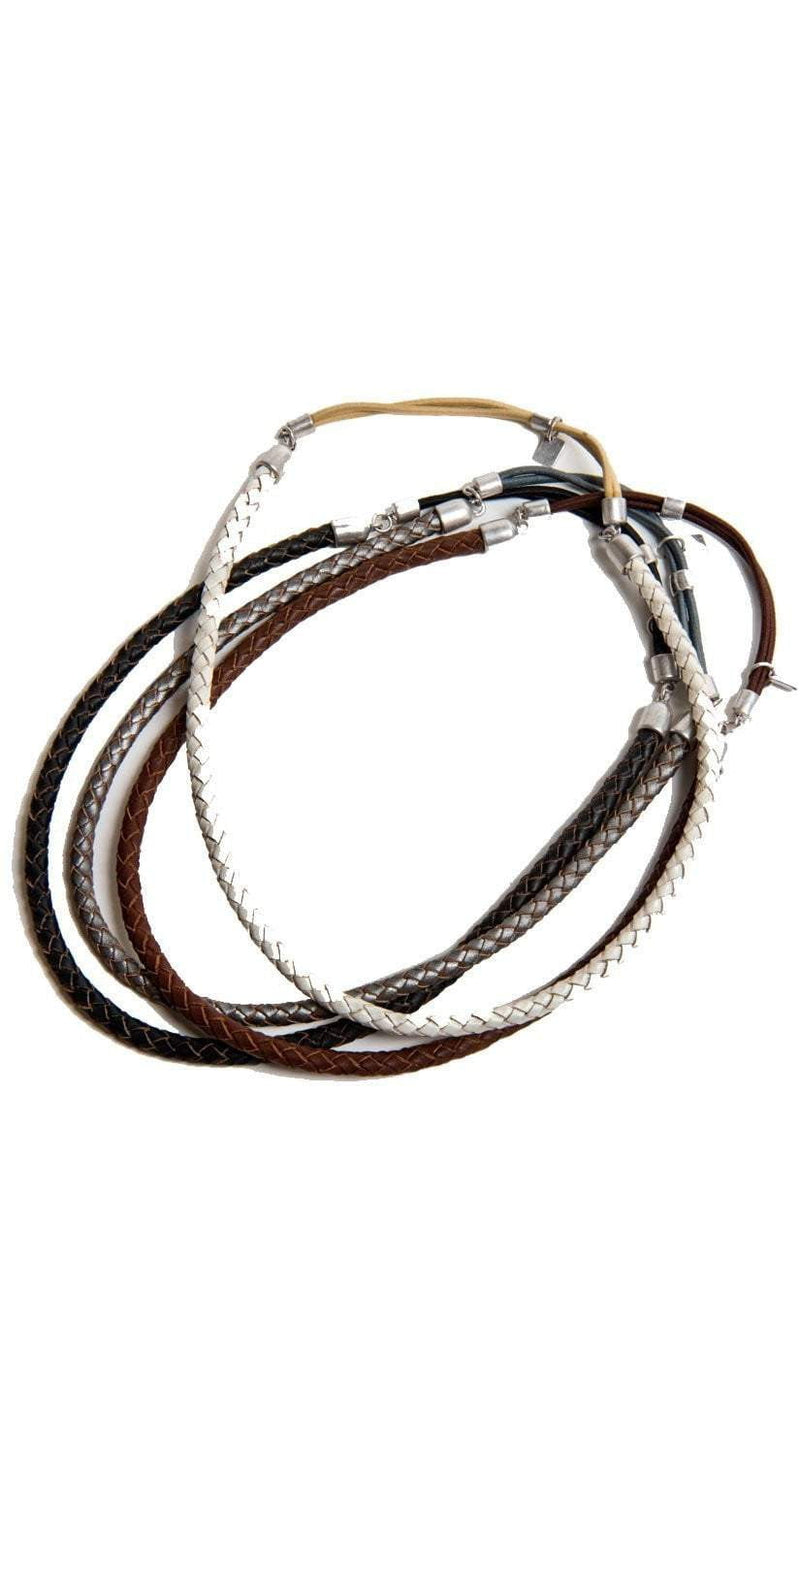 Ficcare Single Braided Leather Headband in Silver B978: